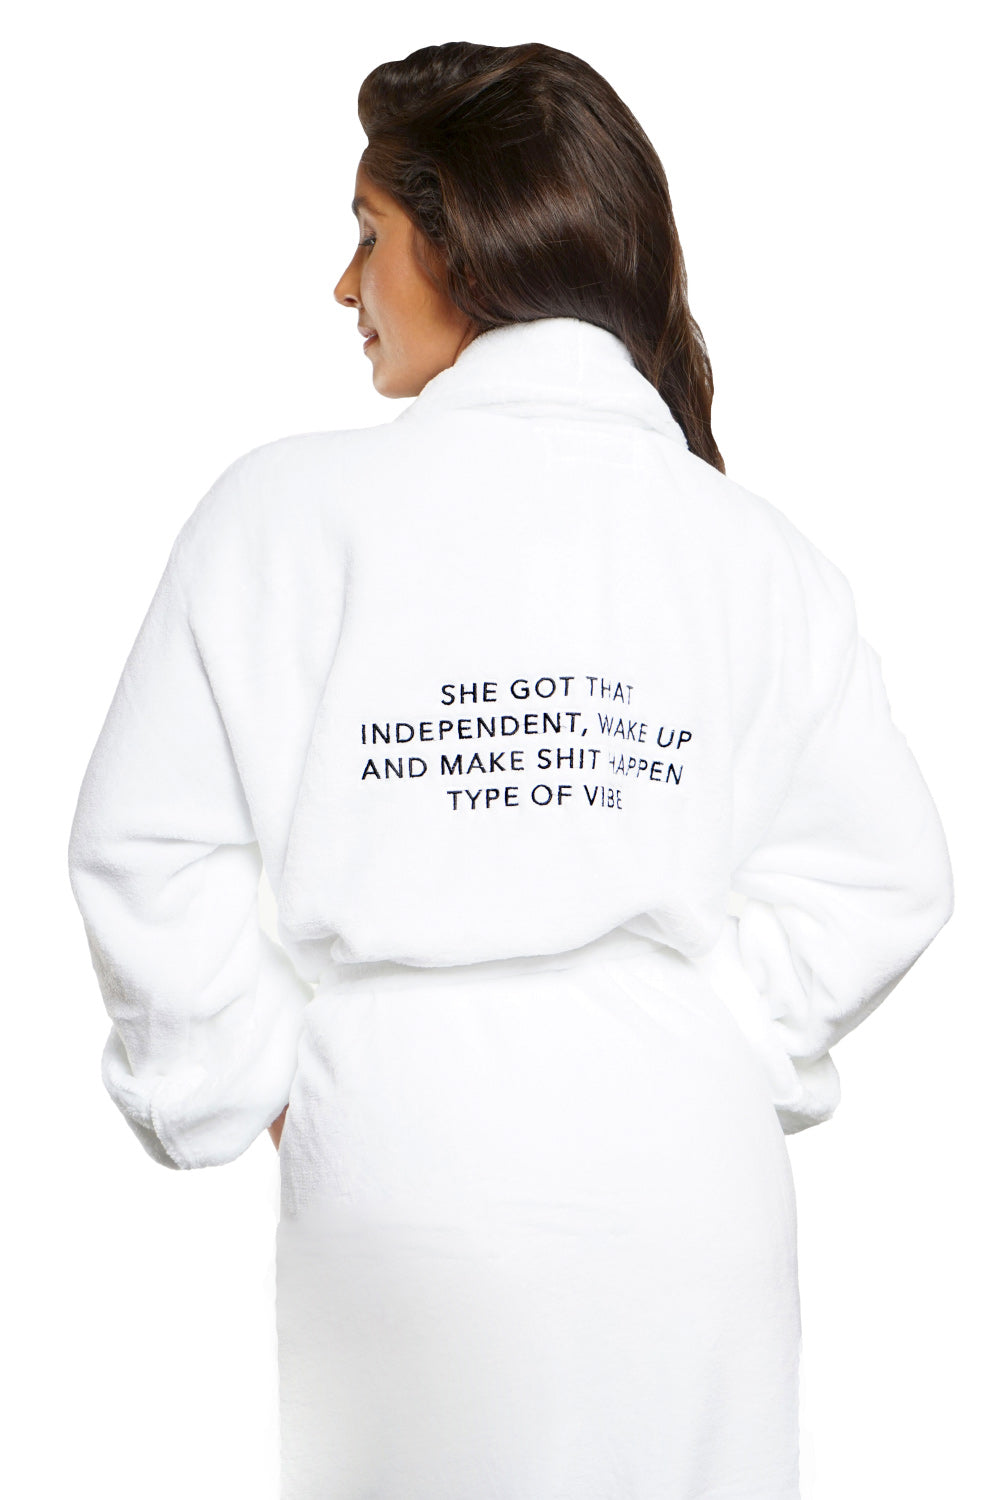 LUXE PLUSH ROBE  - Independent Type Vibe x Melissa Molinaro